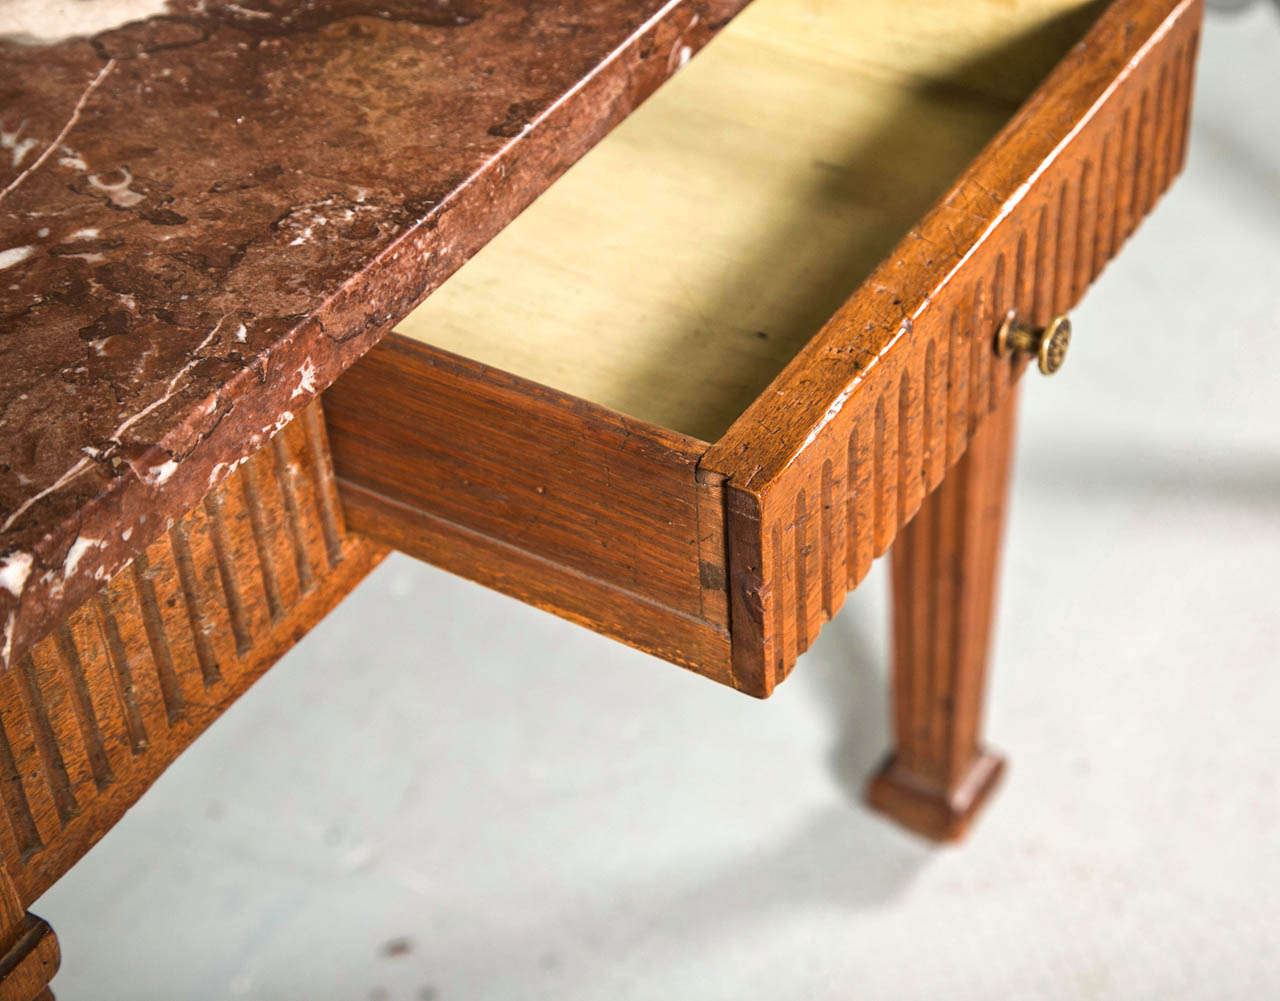 Italian square fluted apron and leg walnut table with